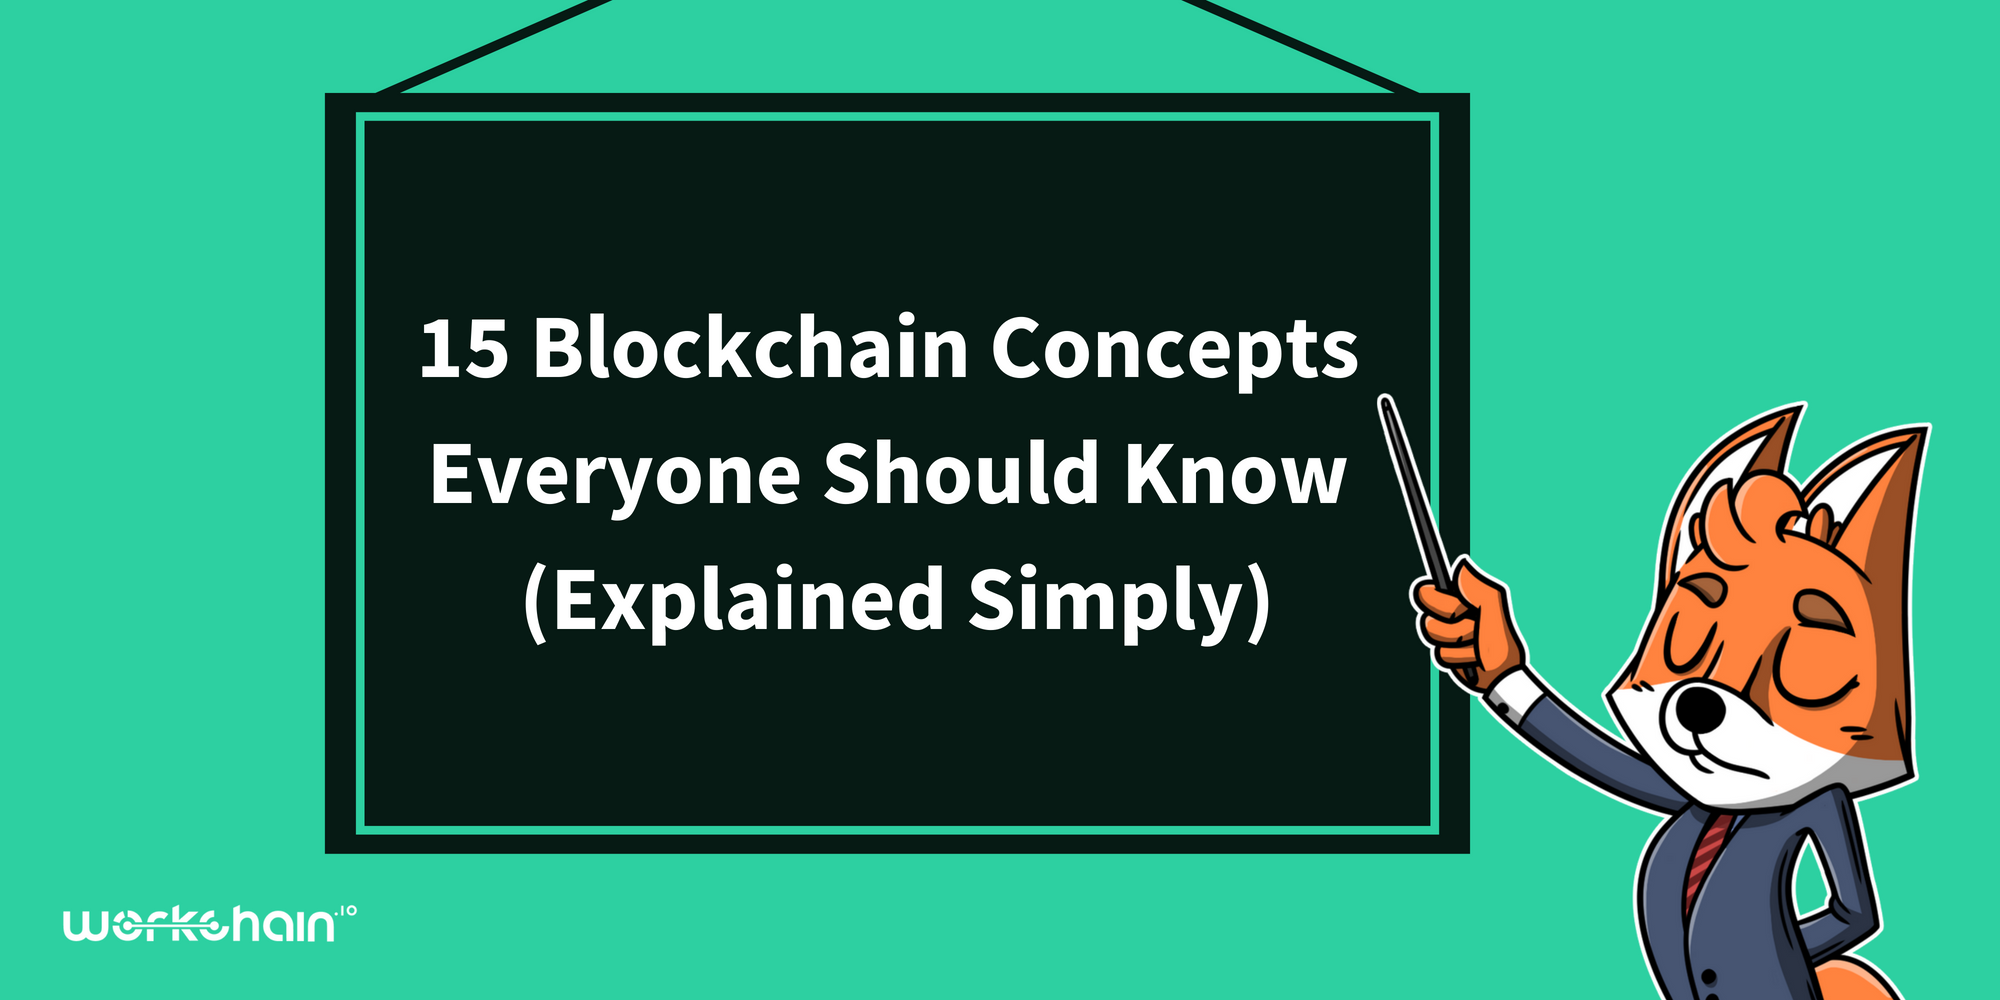 15 Blockchain Concepts Everyone Should Know (Explained